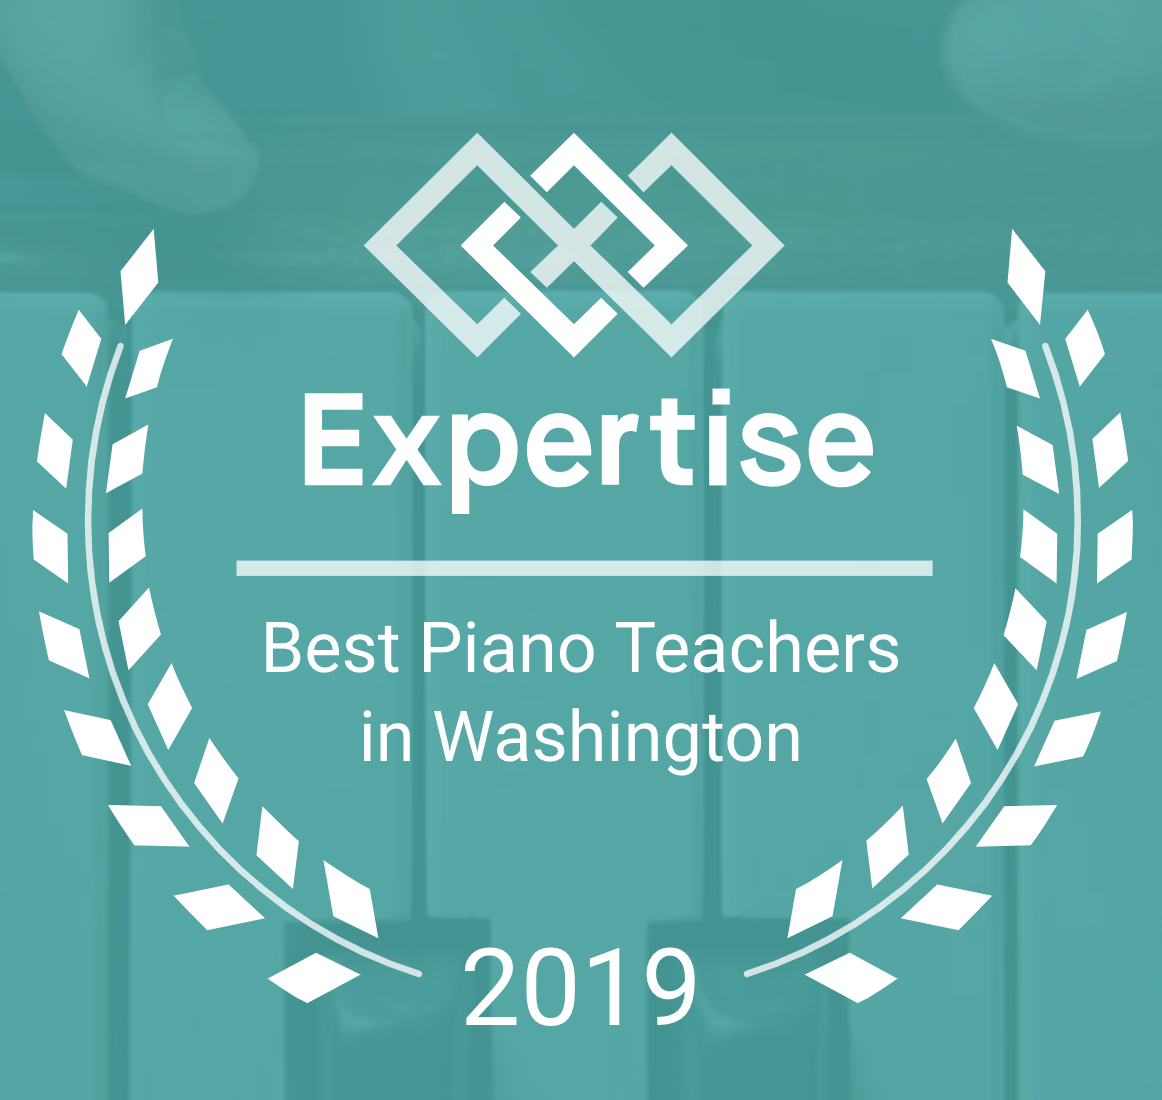 Expertise Best Piano Teachers in Washington DC metro area awarded to Linda Fotis of Joy of Music piano lessons